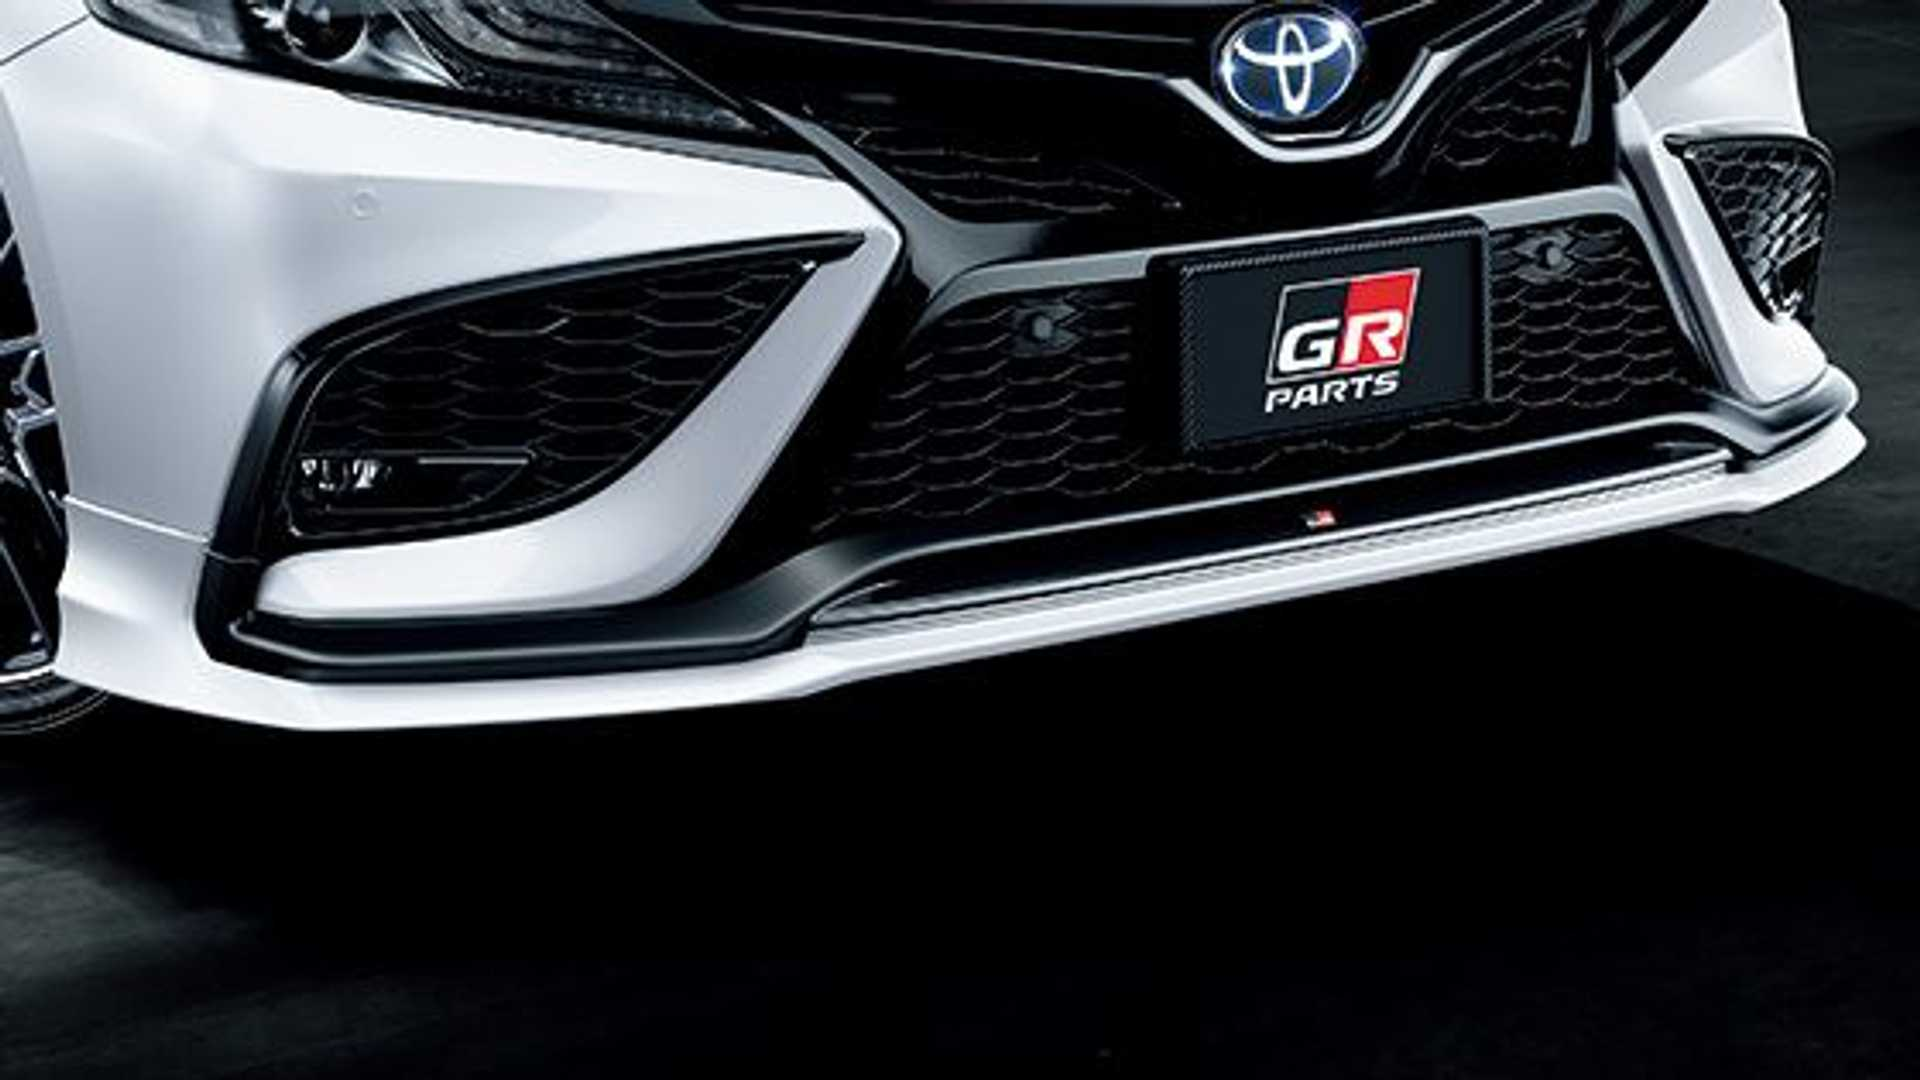 toyota-camry-gr-front-fascia